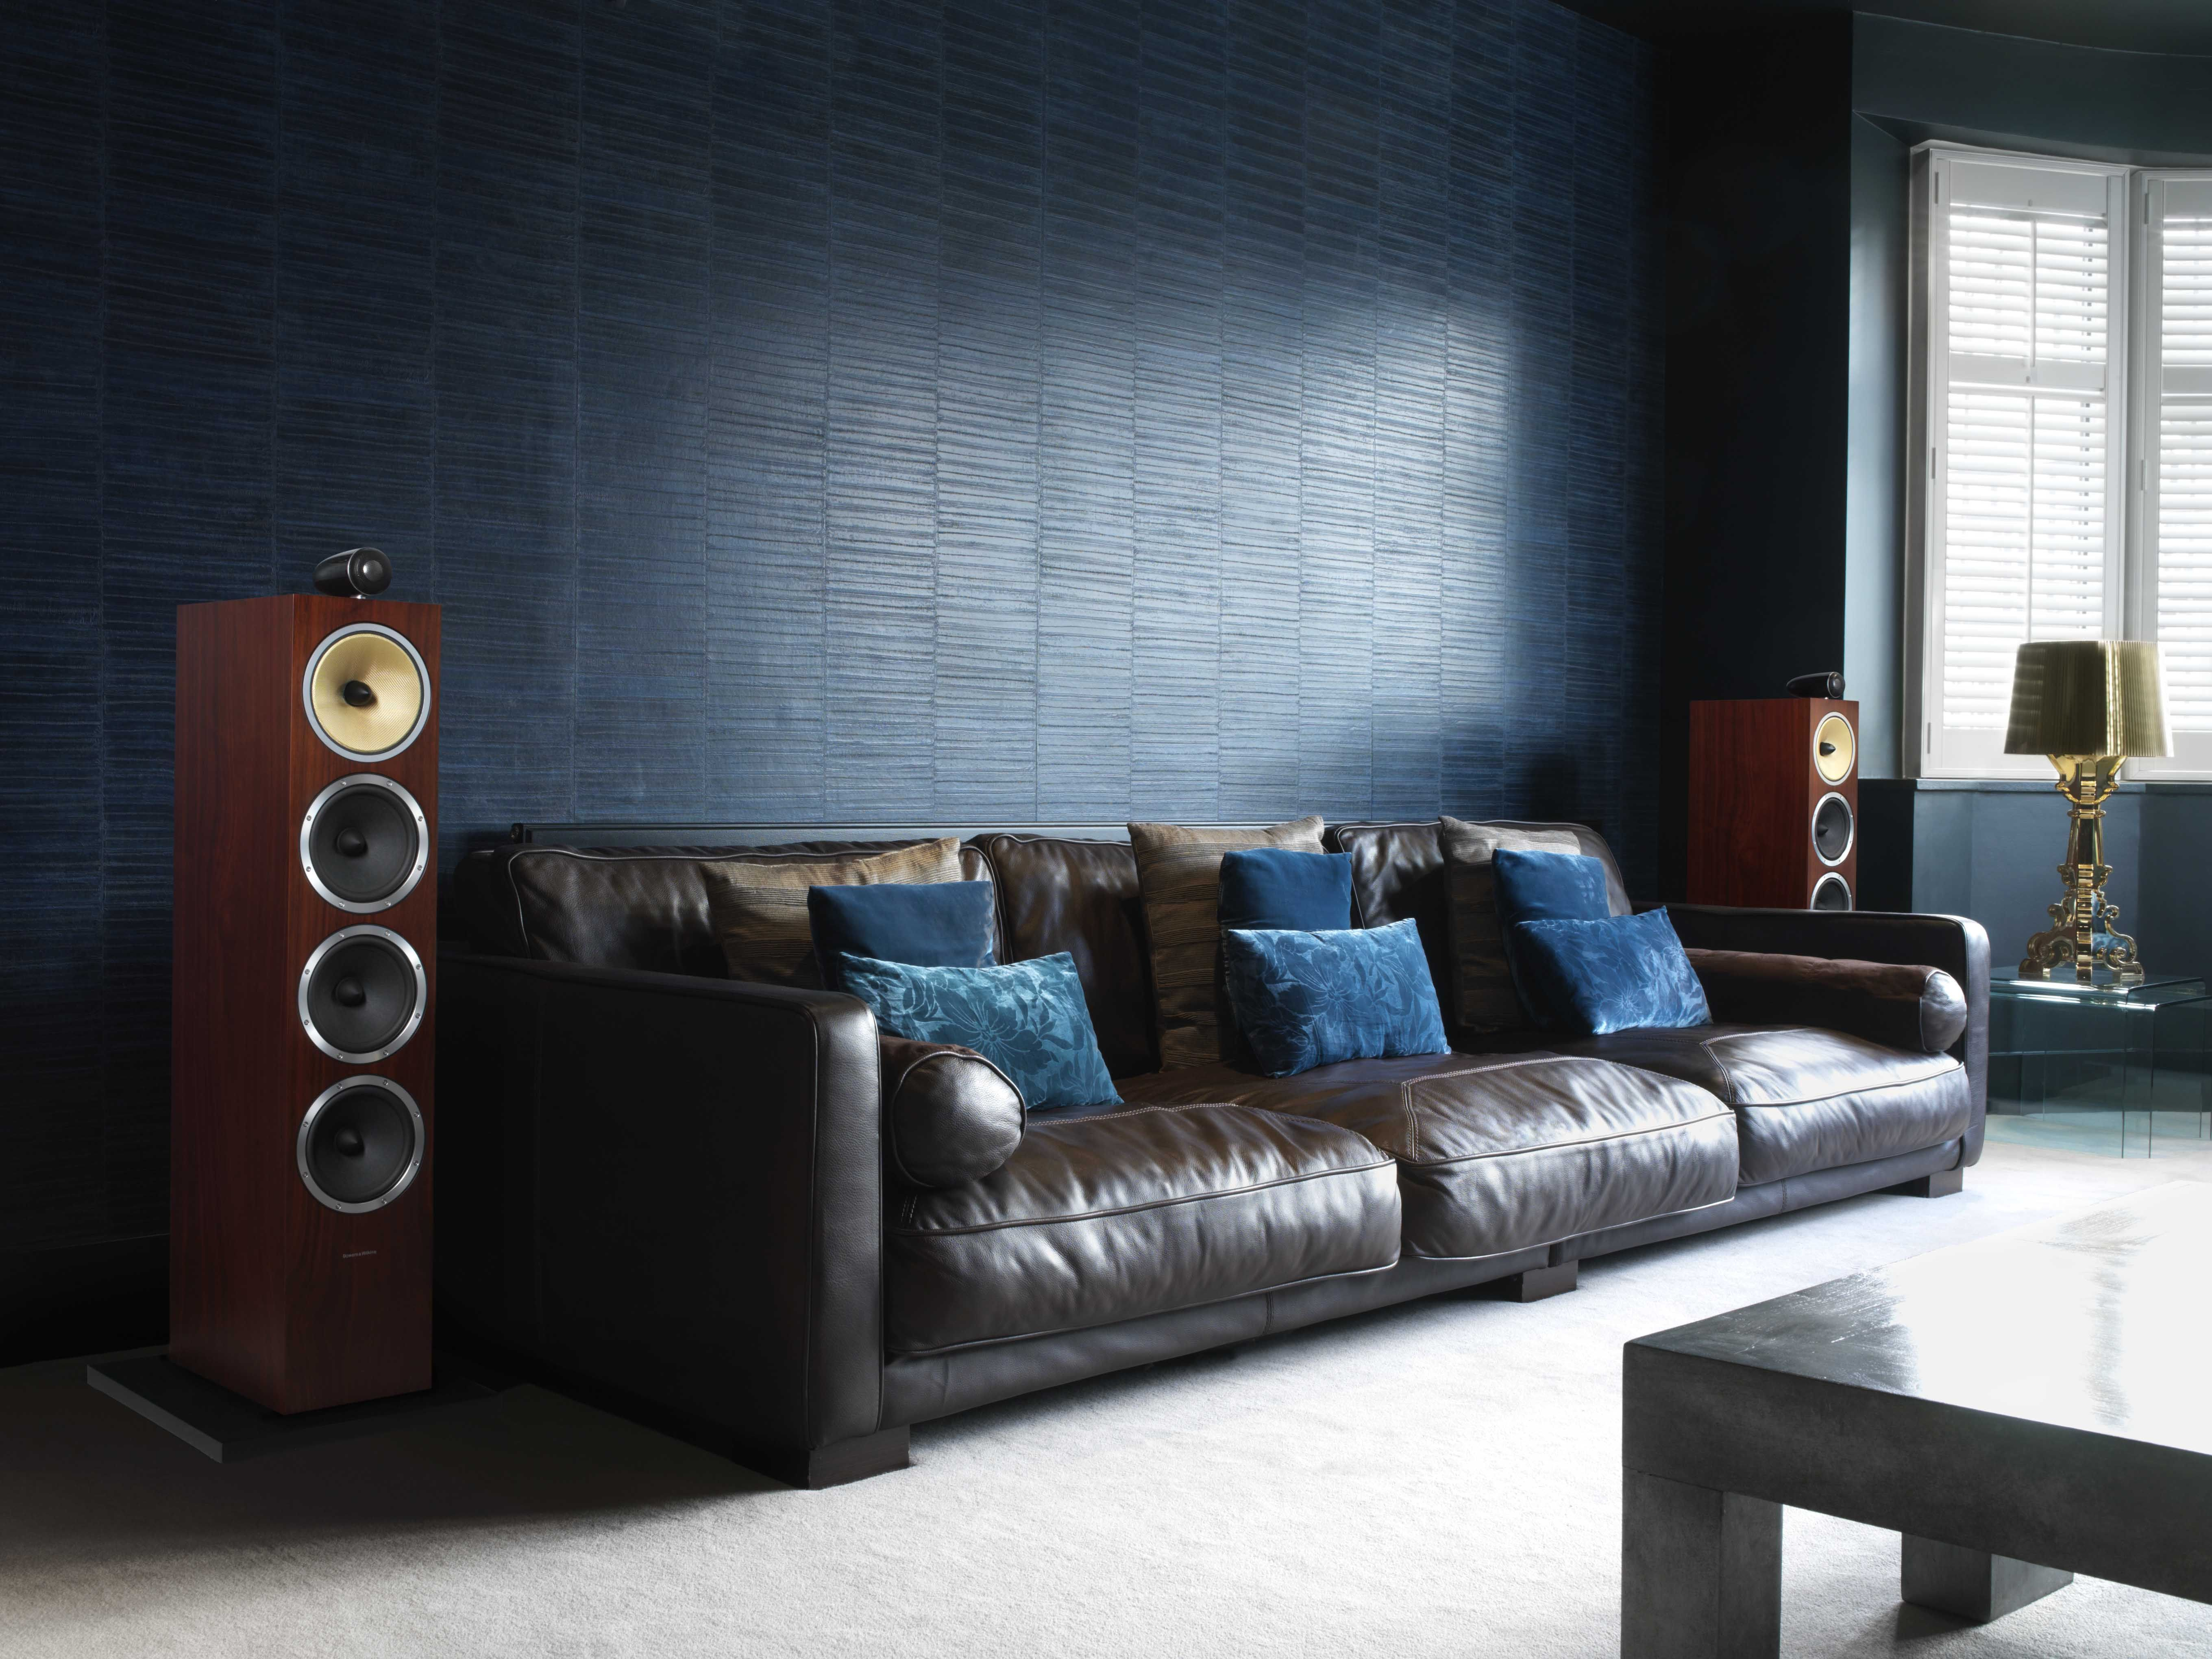 Bowers And Wilkins Speakers: CM Seriesu0027 New Crown Jewel Part 37